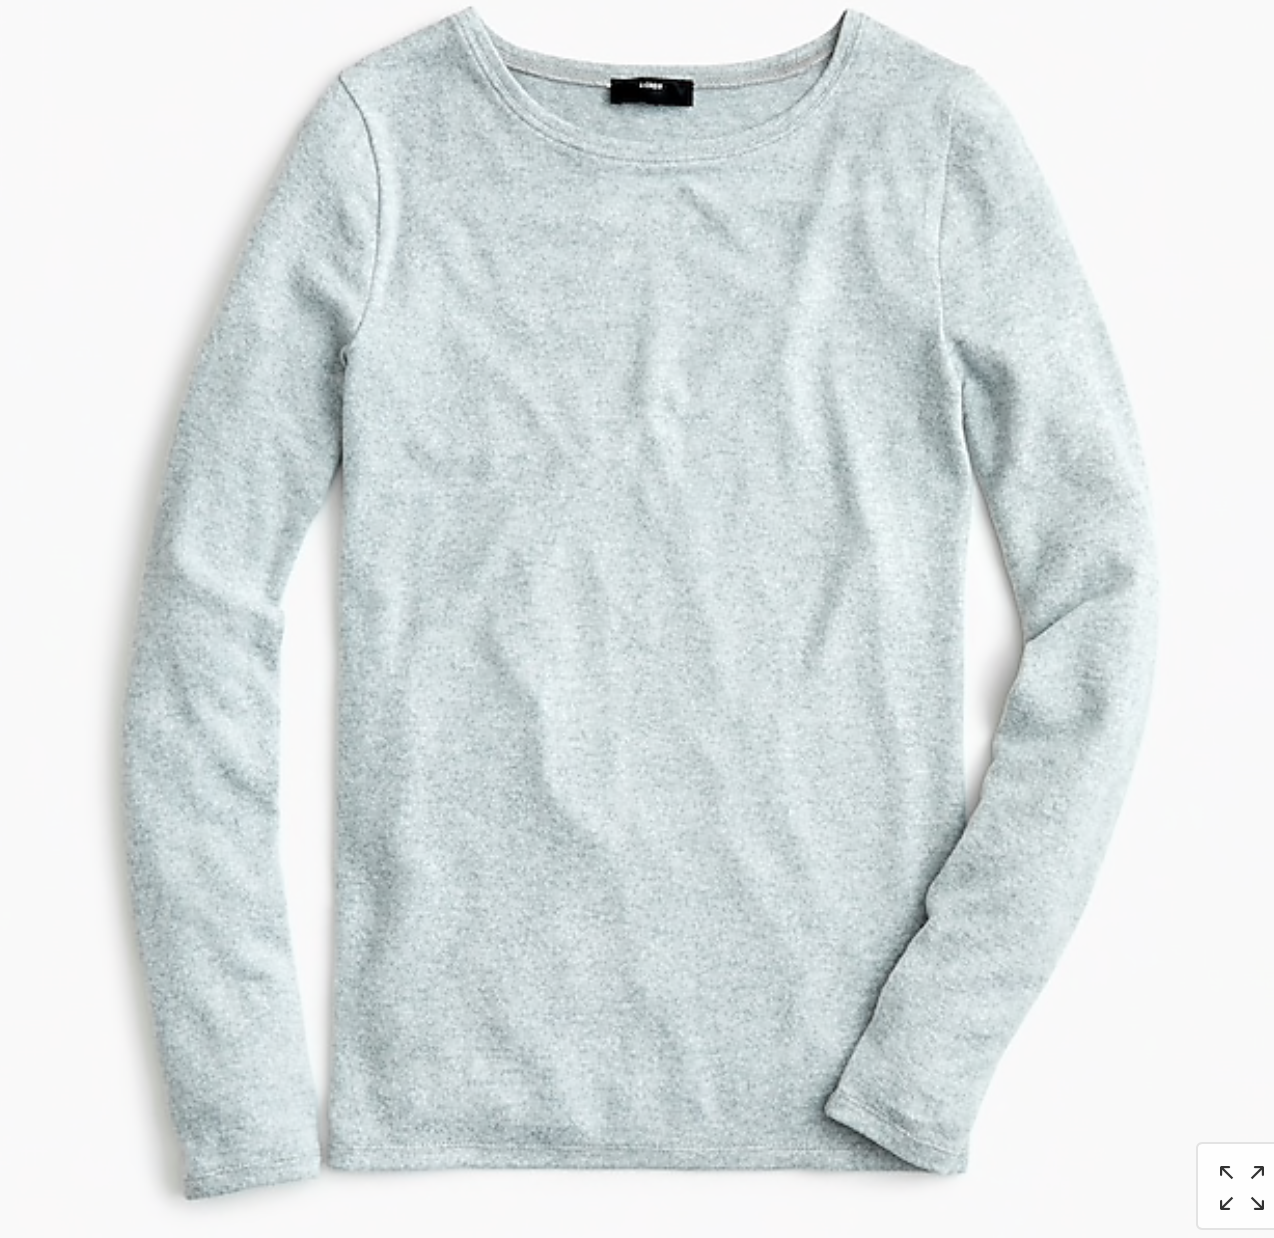 Supersoft Long-Sleeved Tee